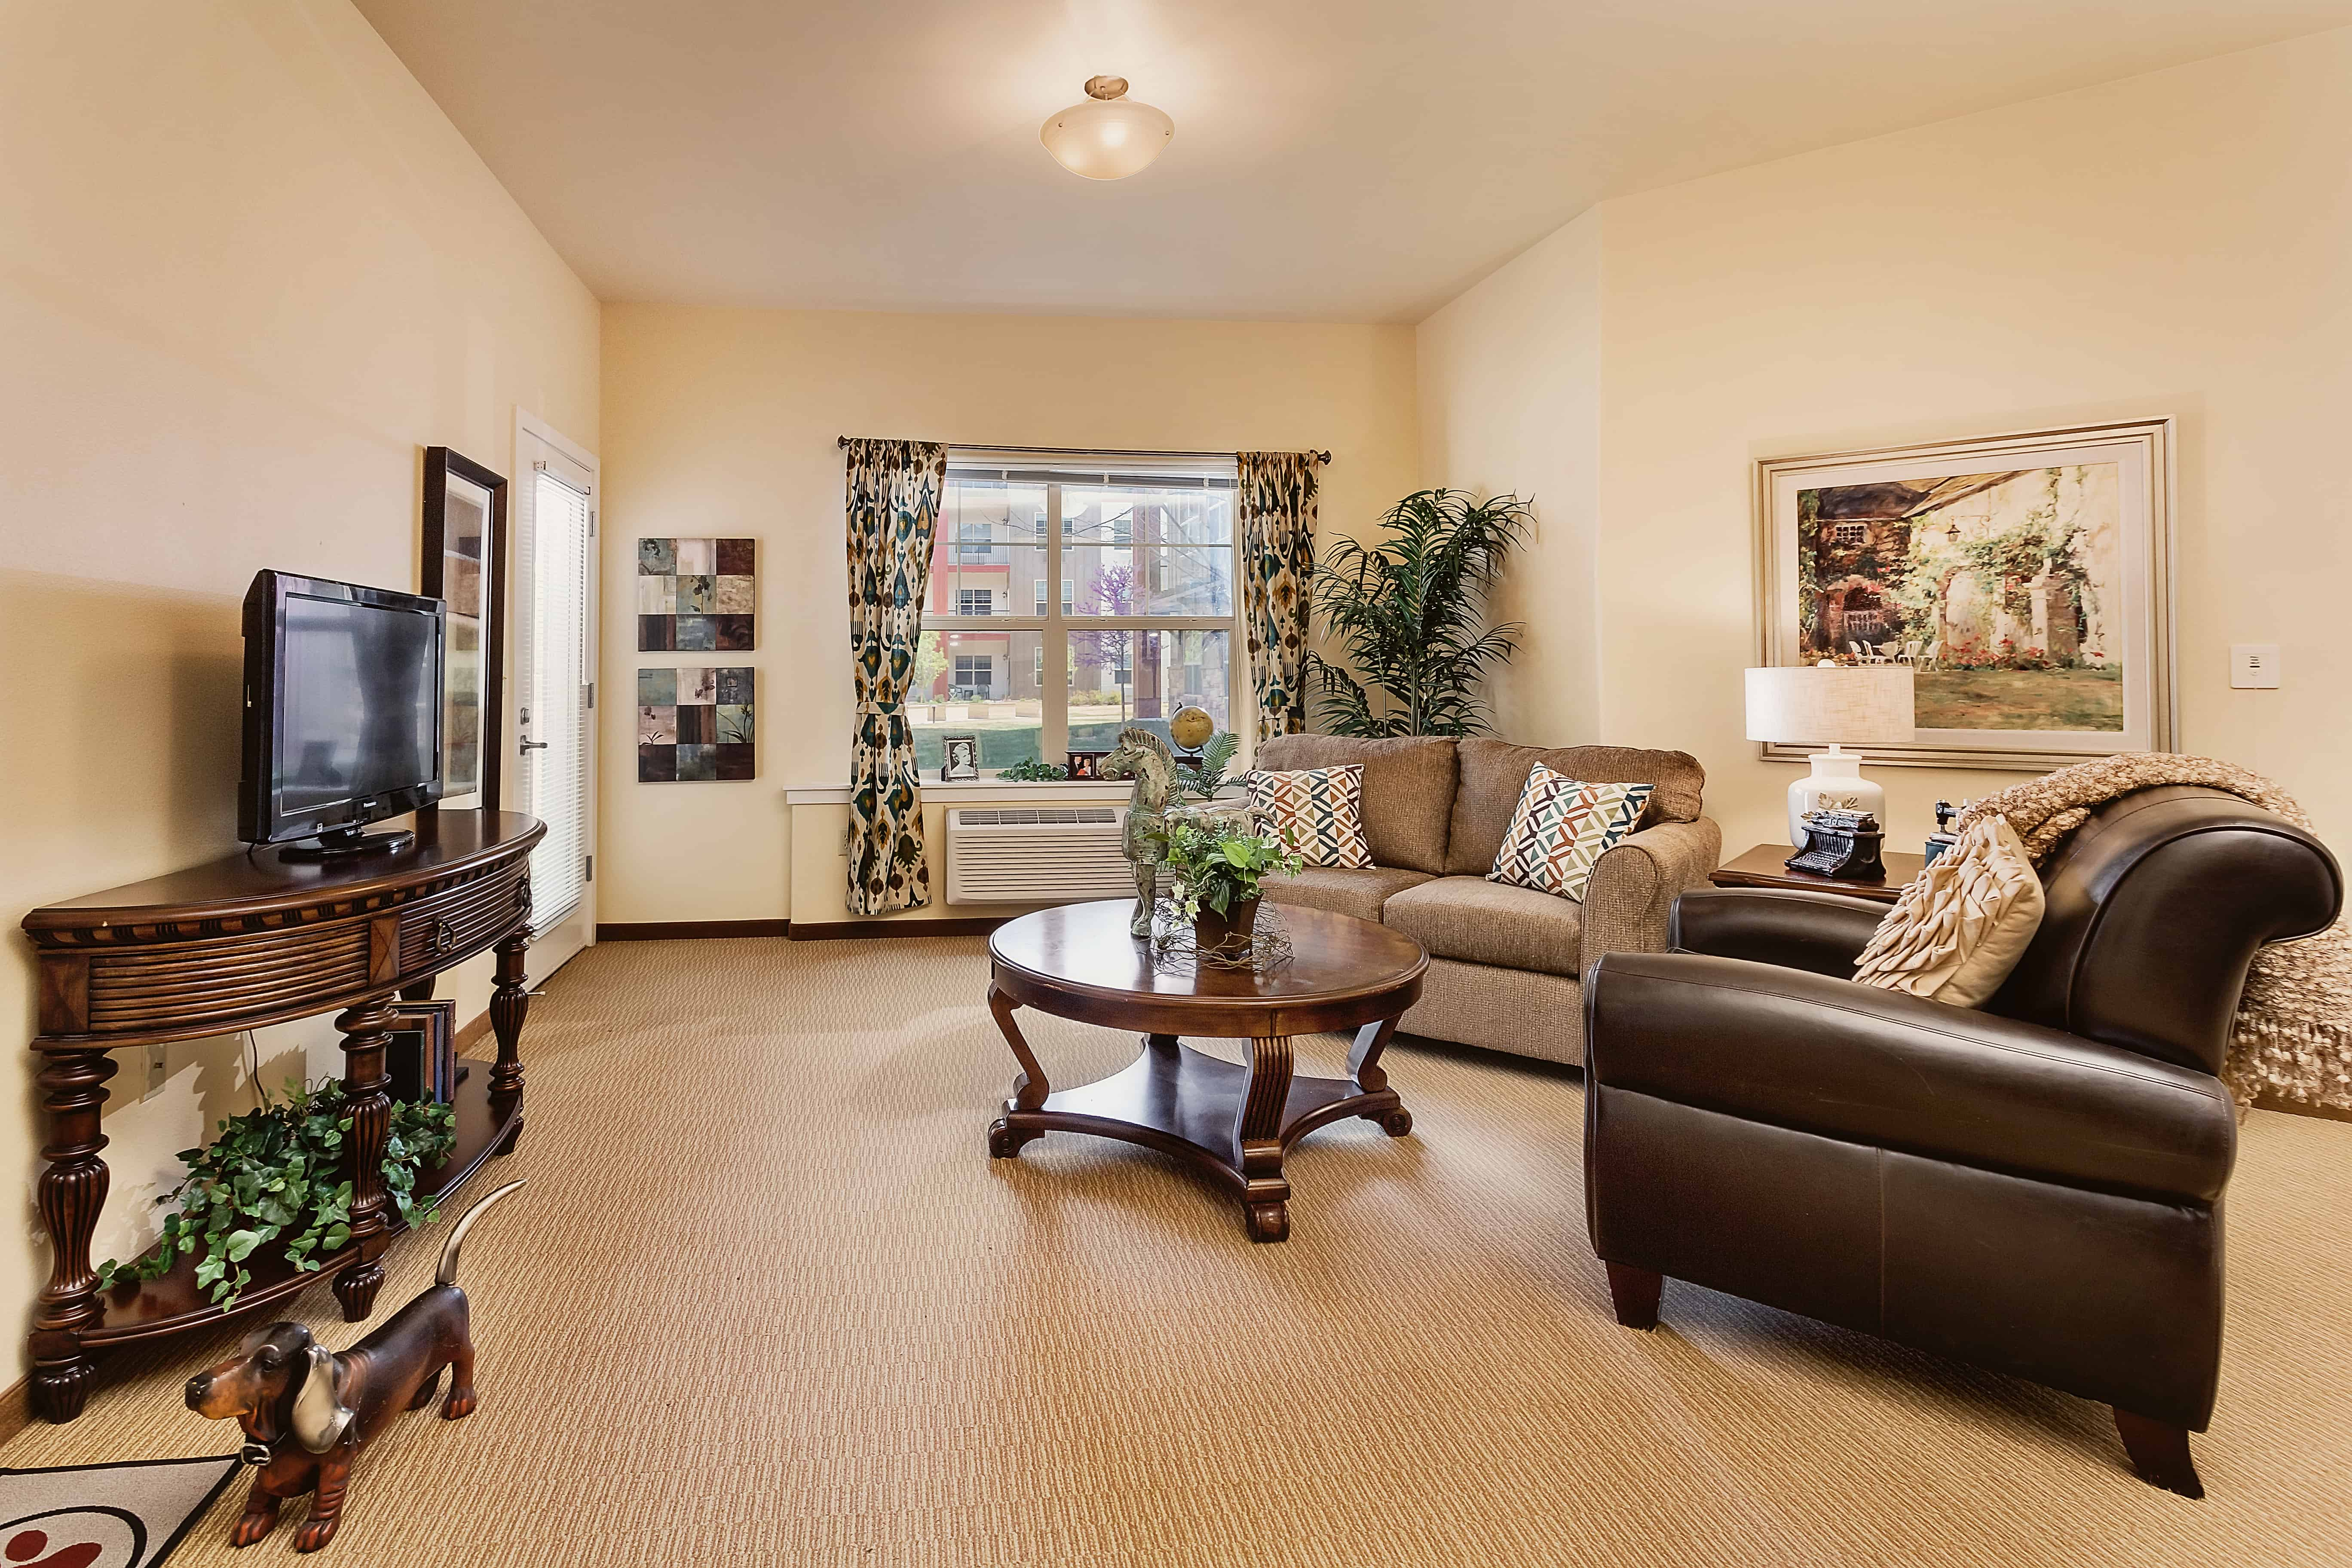 Marvelous MorningStar Senior Living Of Sparks, 2360 Wingfield Hills Drive, Sparks, NV  89436